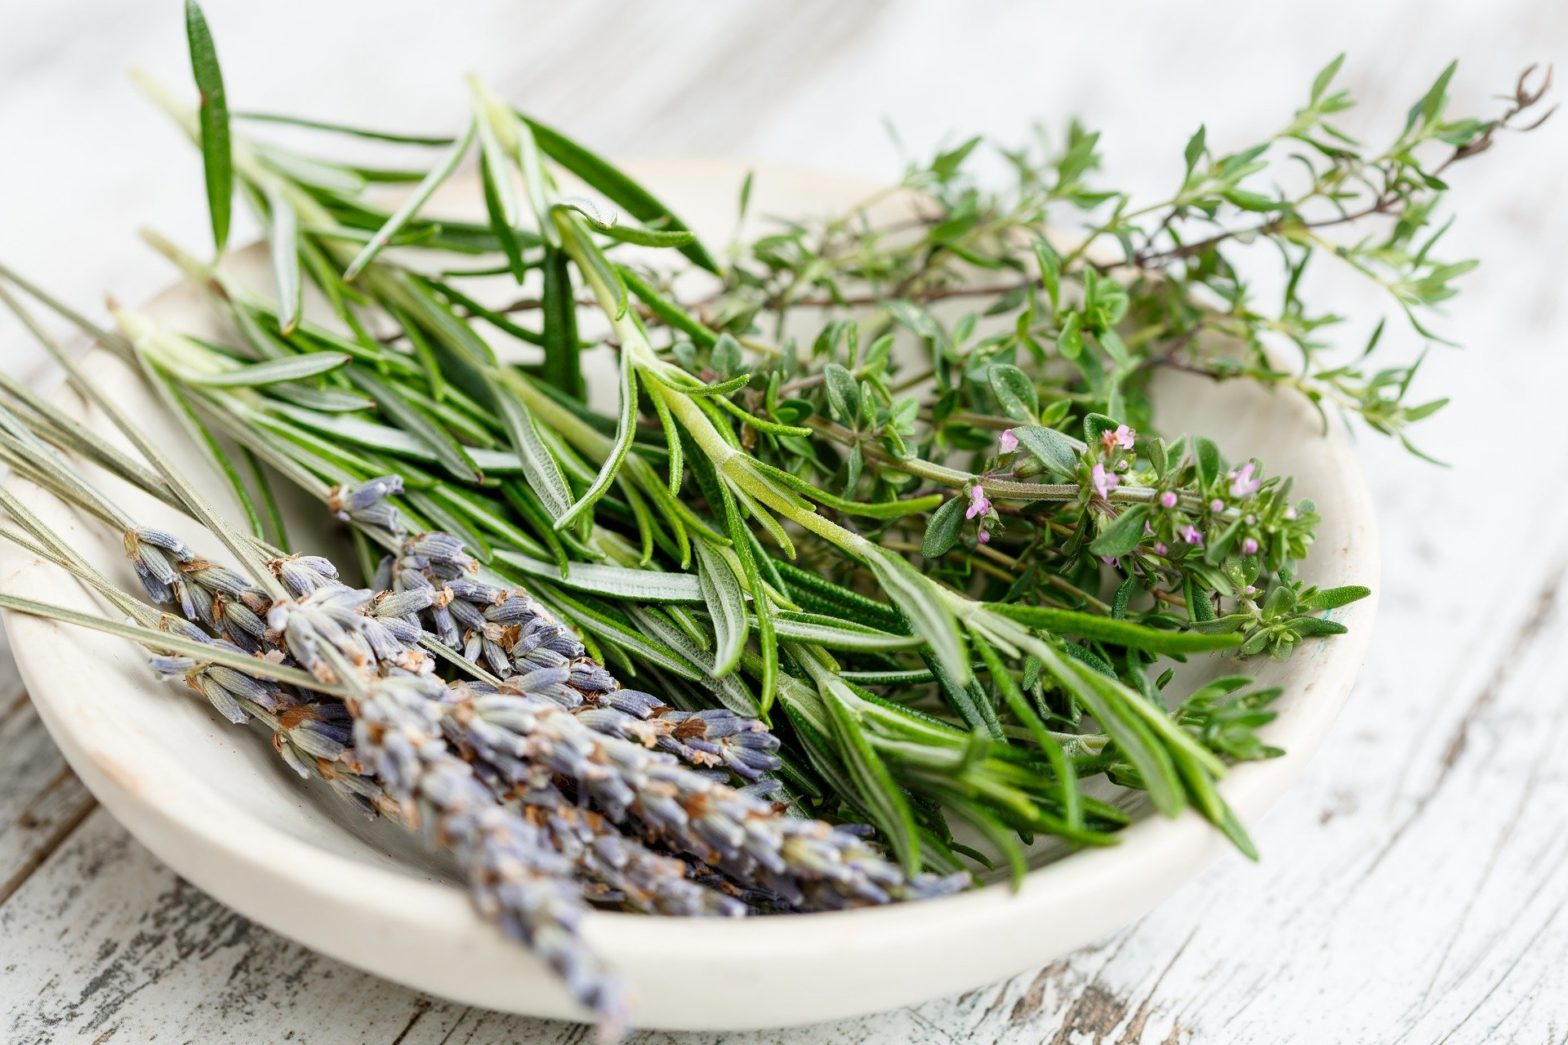 A bowl with rosemary, lavandel, Thyme